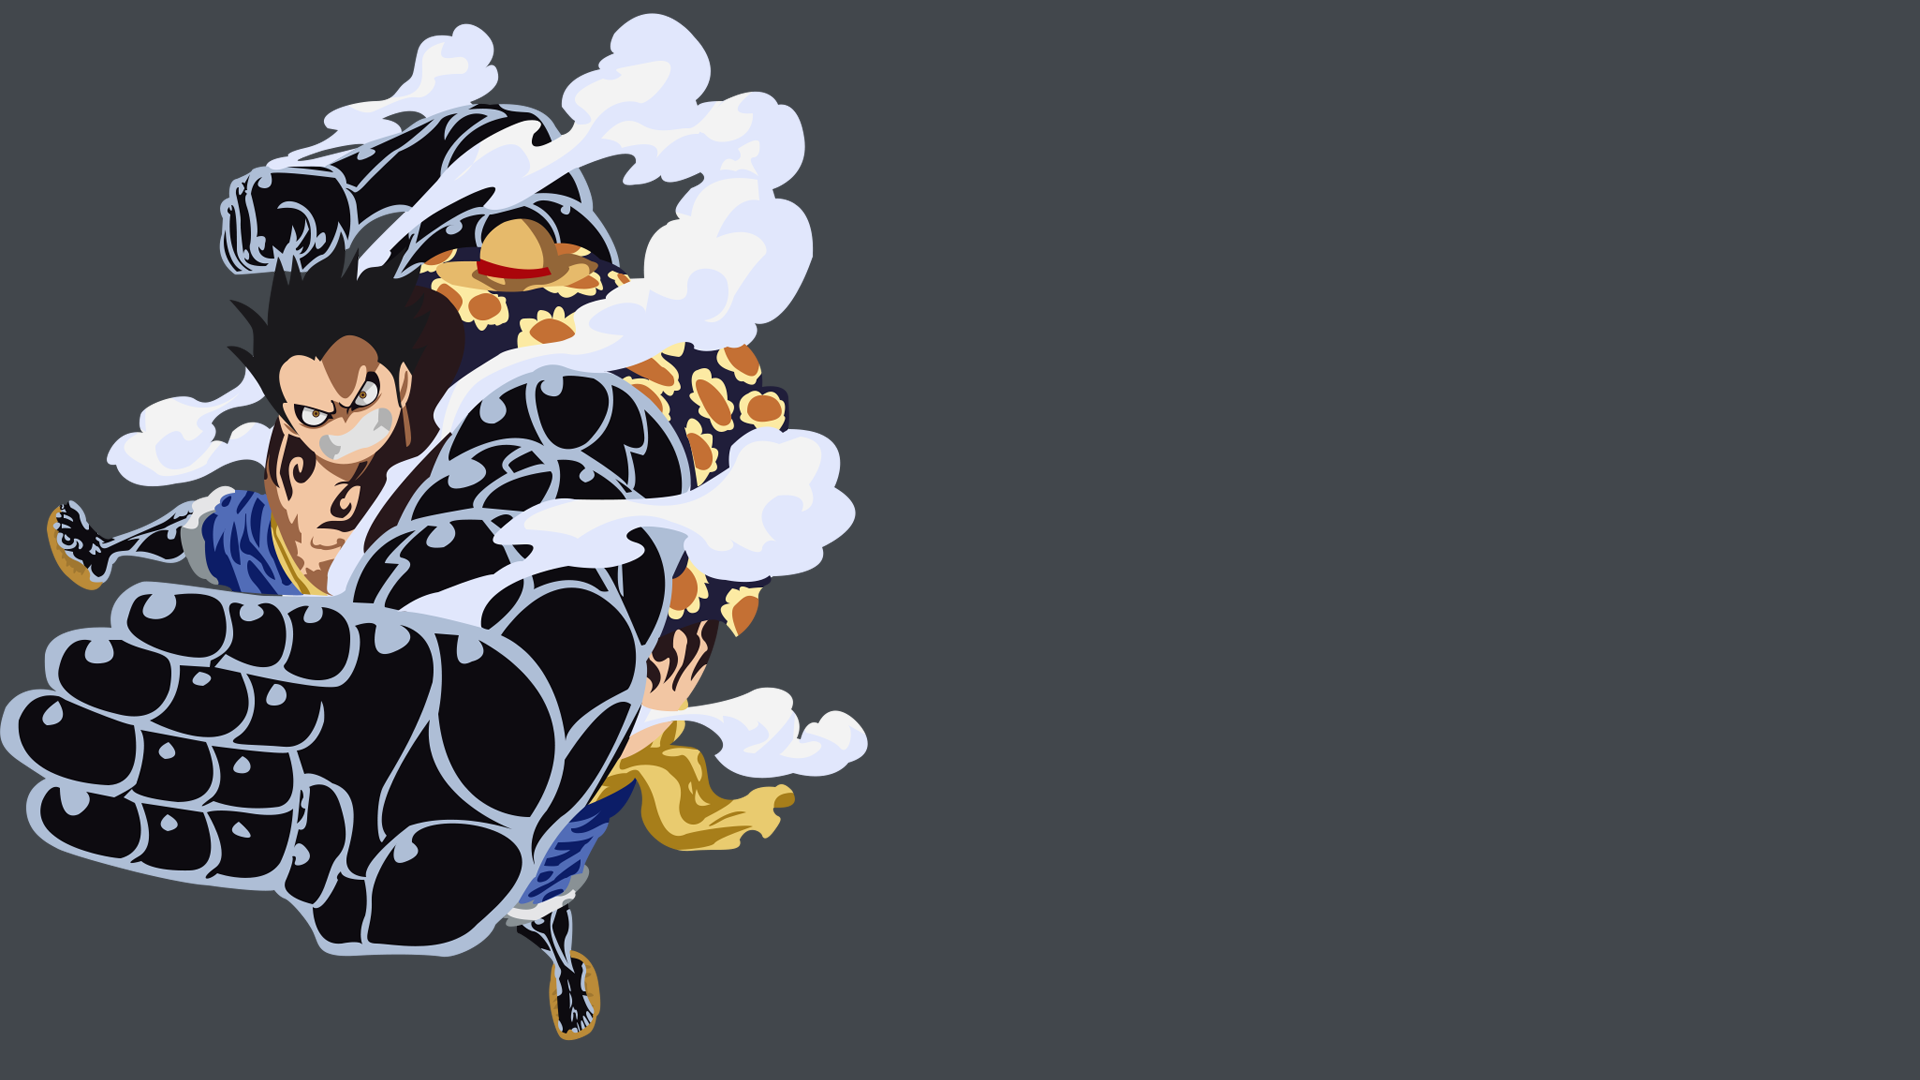 Minimalist Monkey D. Luffy Gear Fourth By Fanjiwildanu On